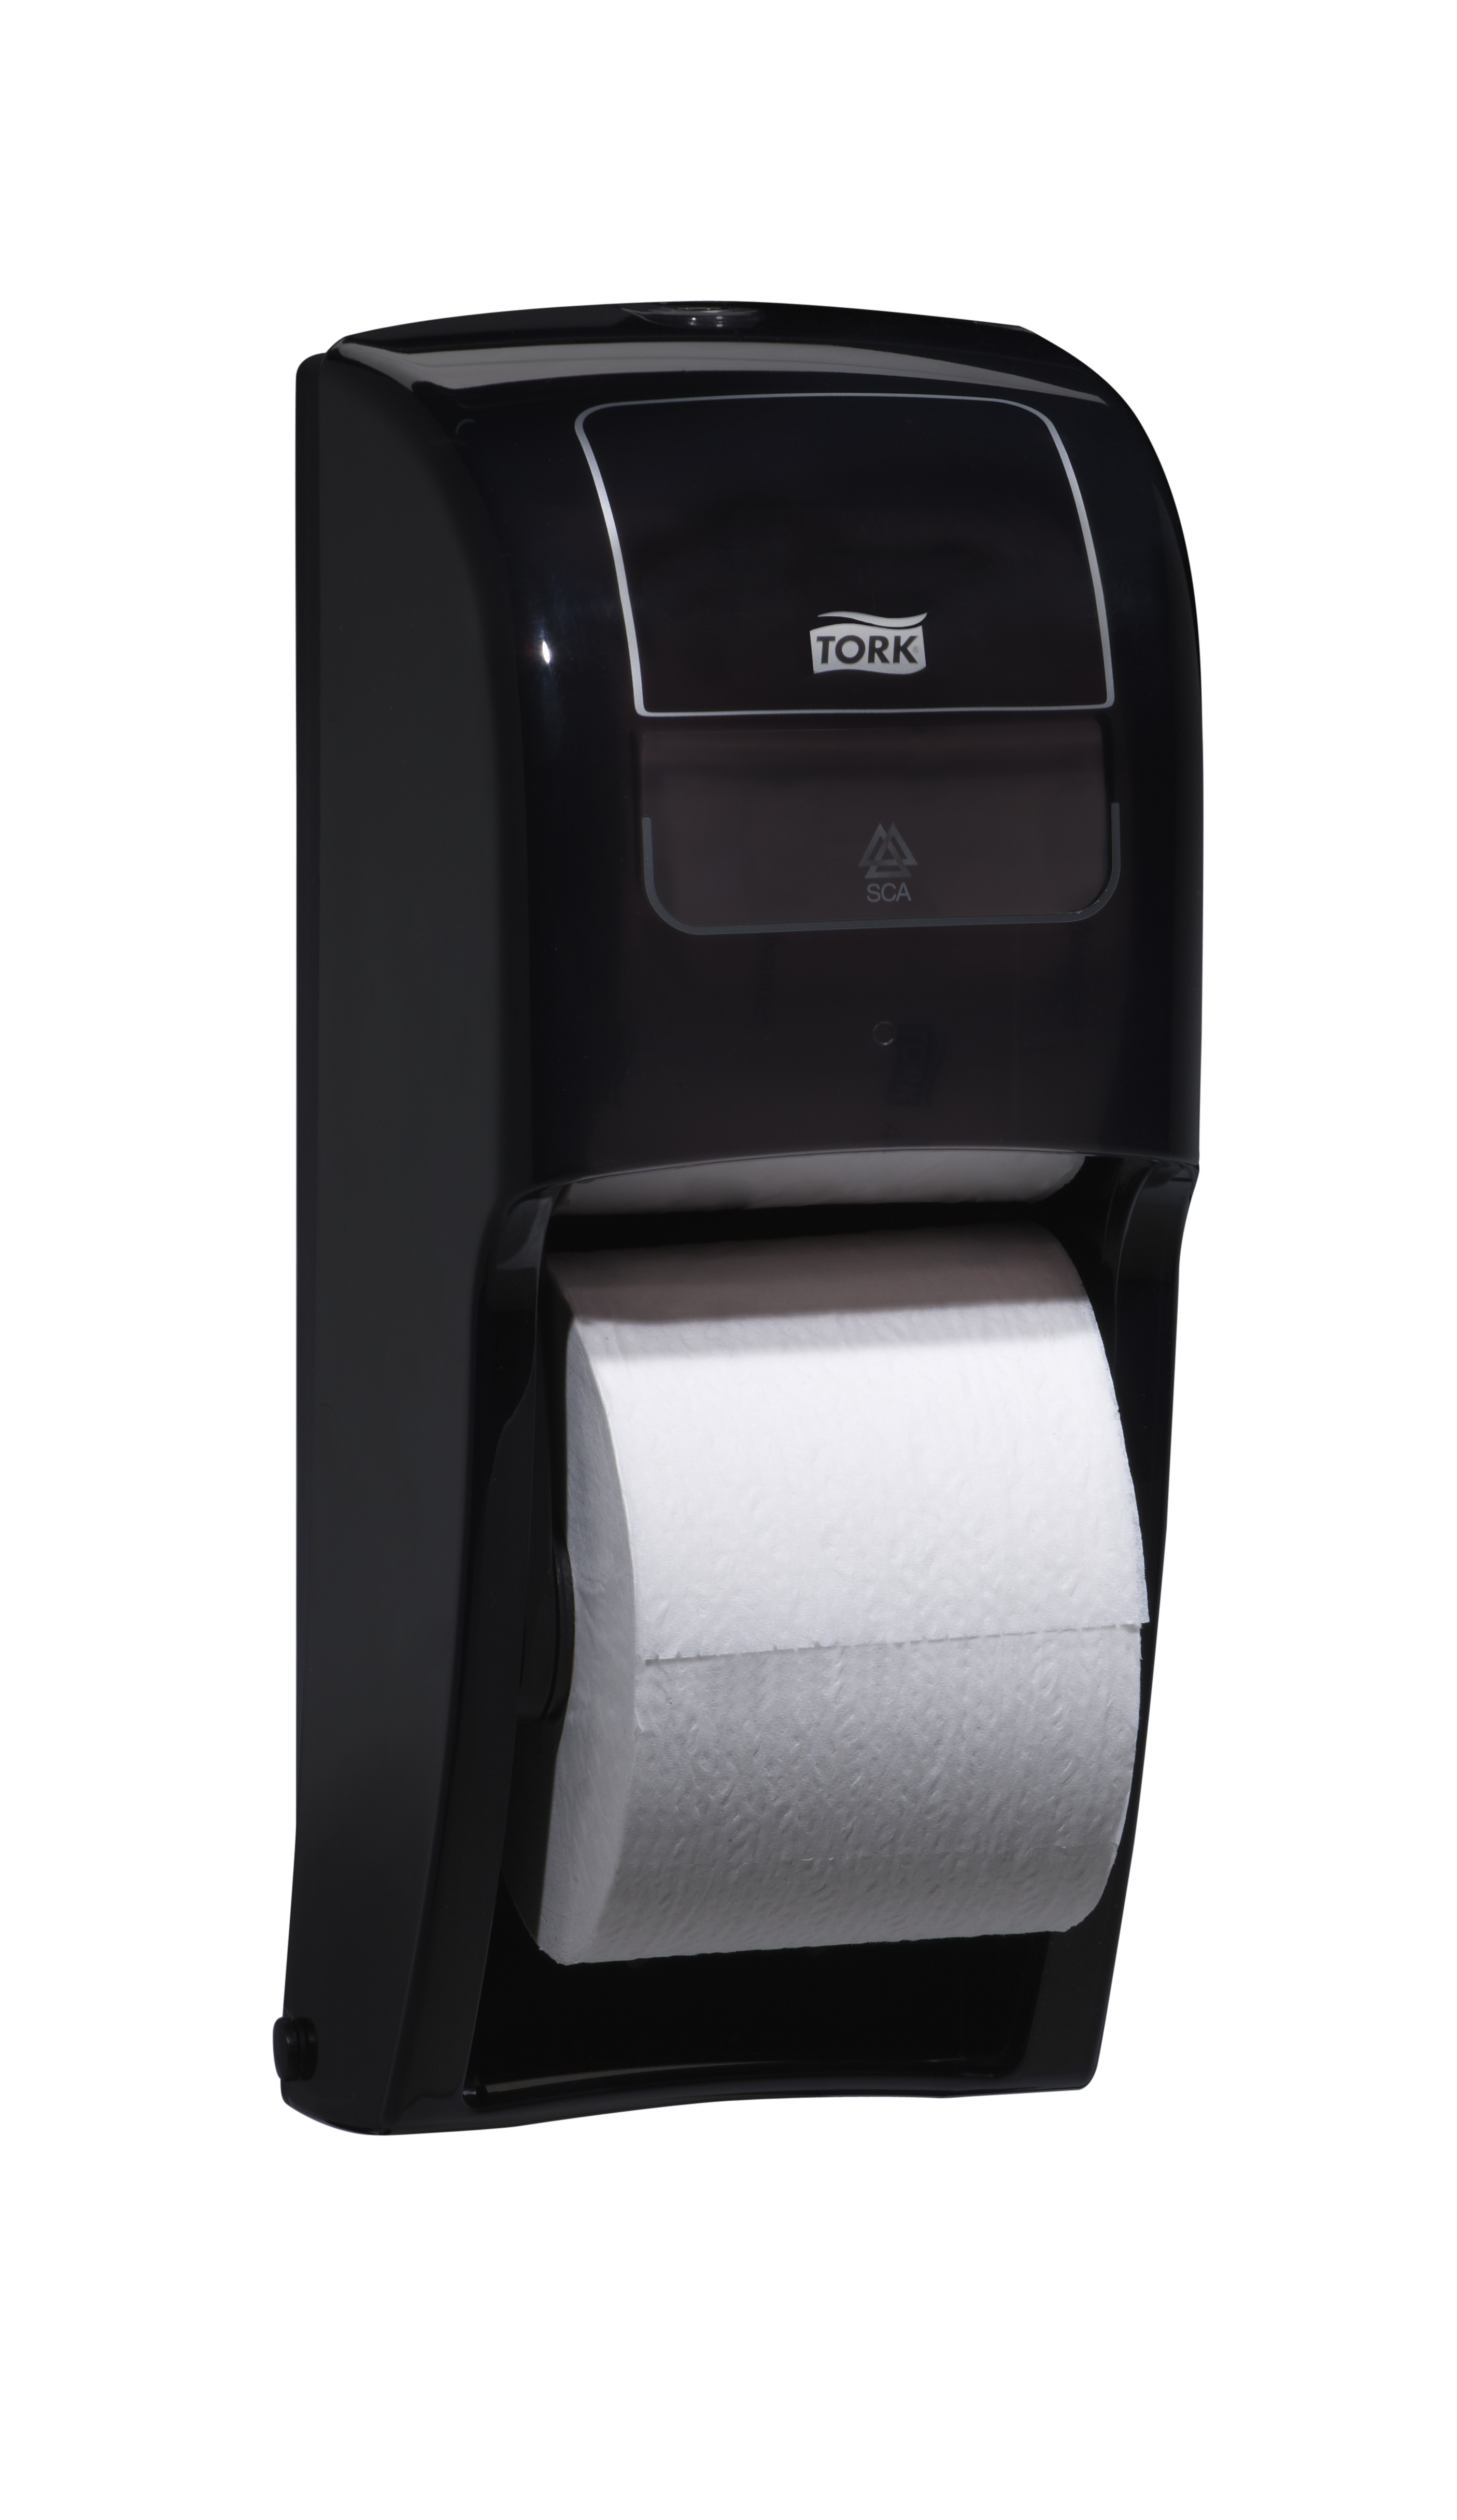 10073286624977 555628 - Tork Elevation High Capacity Bath Tissue Roll Dispenser, Black